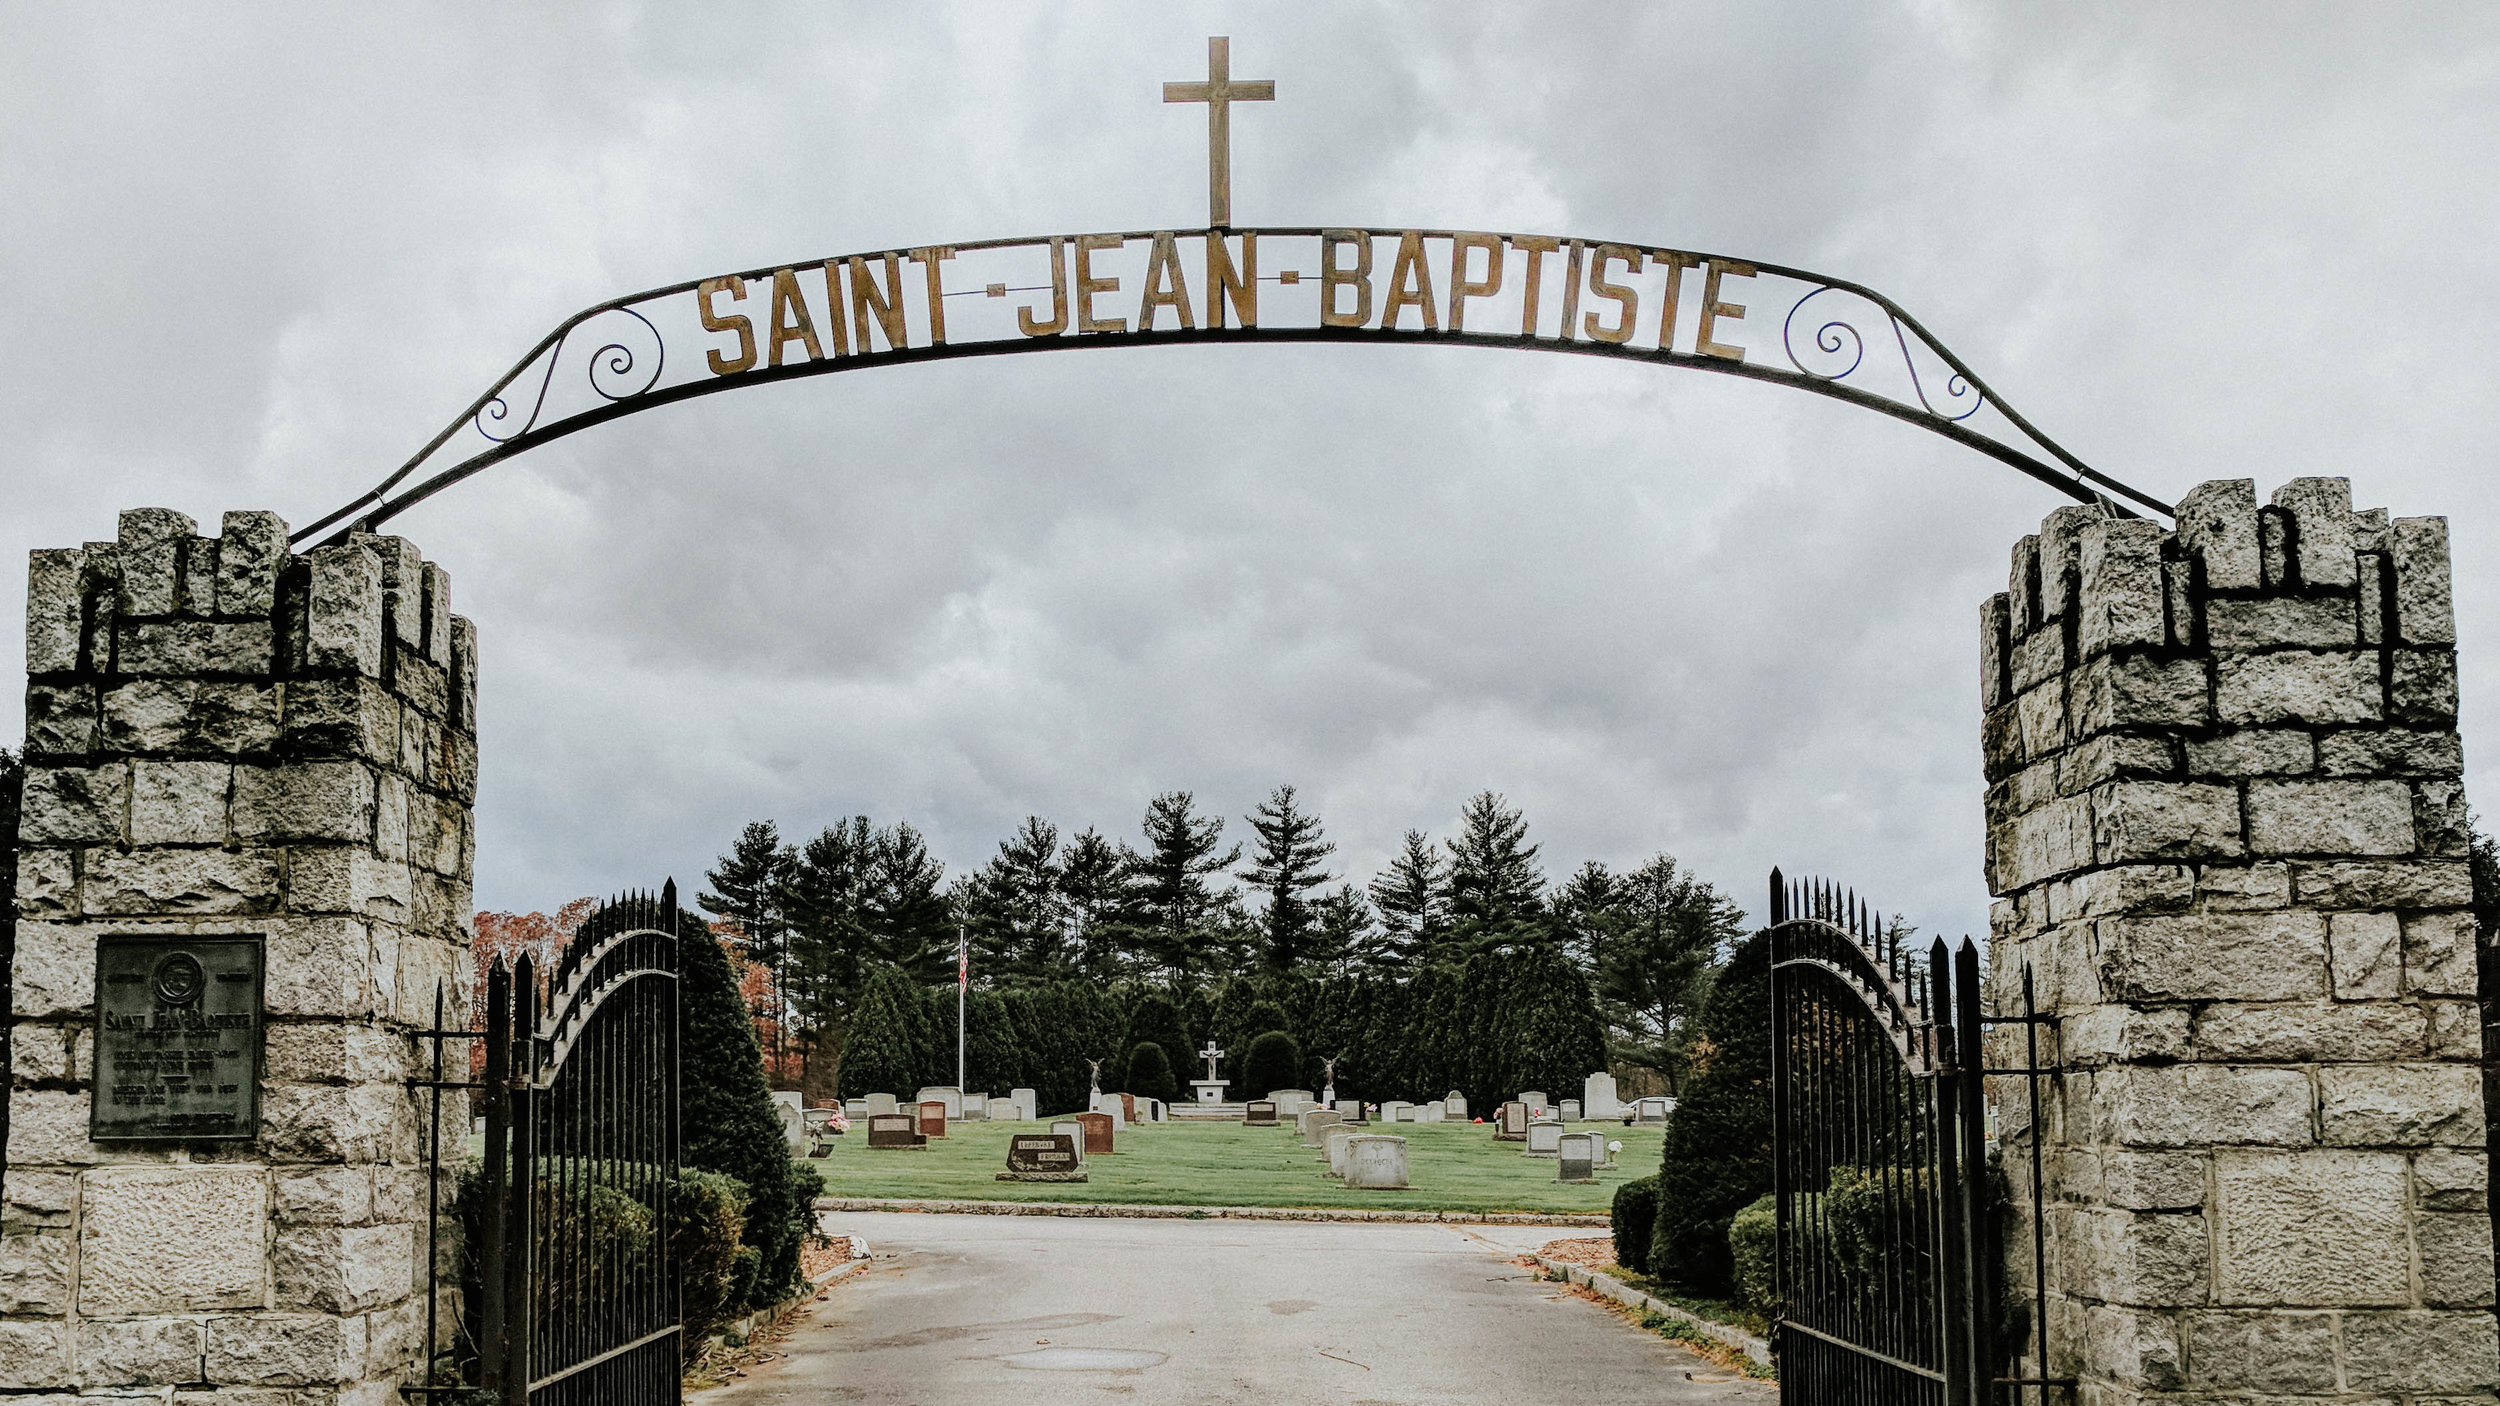 The remains found inside the first barrel were interred at Sain Jean Baptiste cemetery in Allenstown.